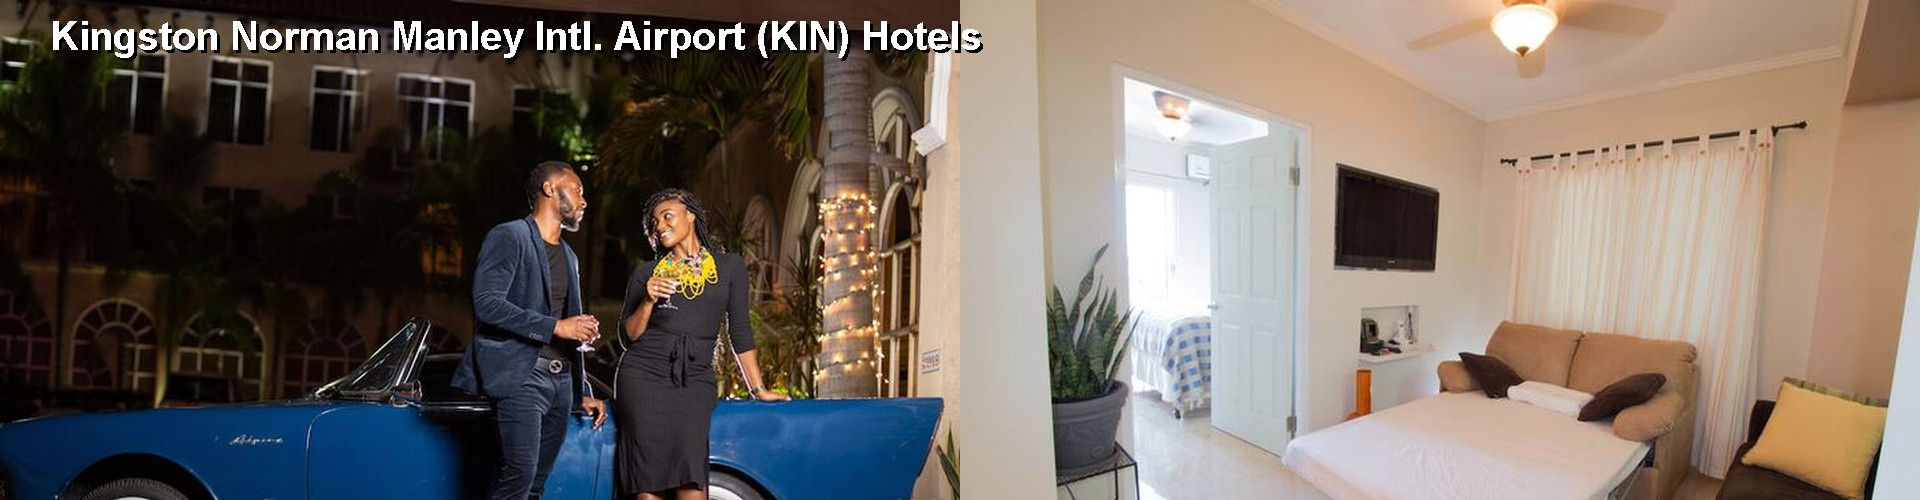 5 Best Hotels near Kingston Norman Manley Intl. Airport (KIN)